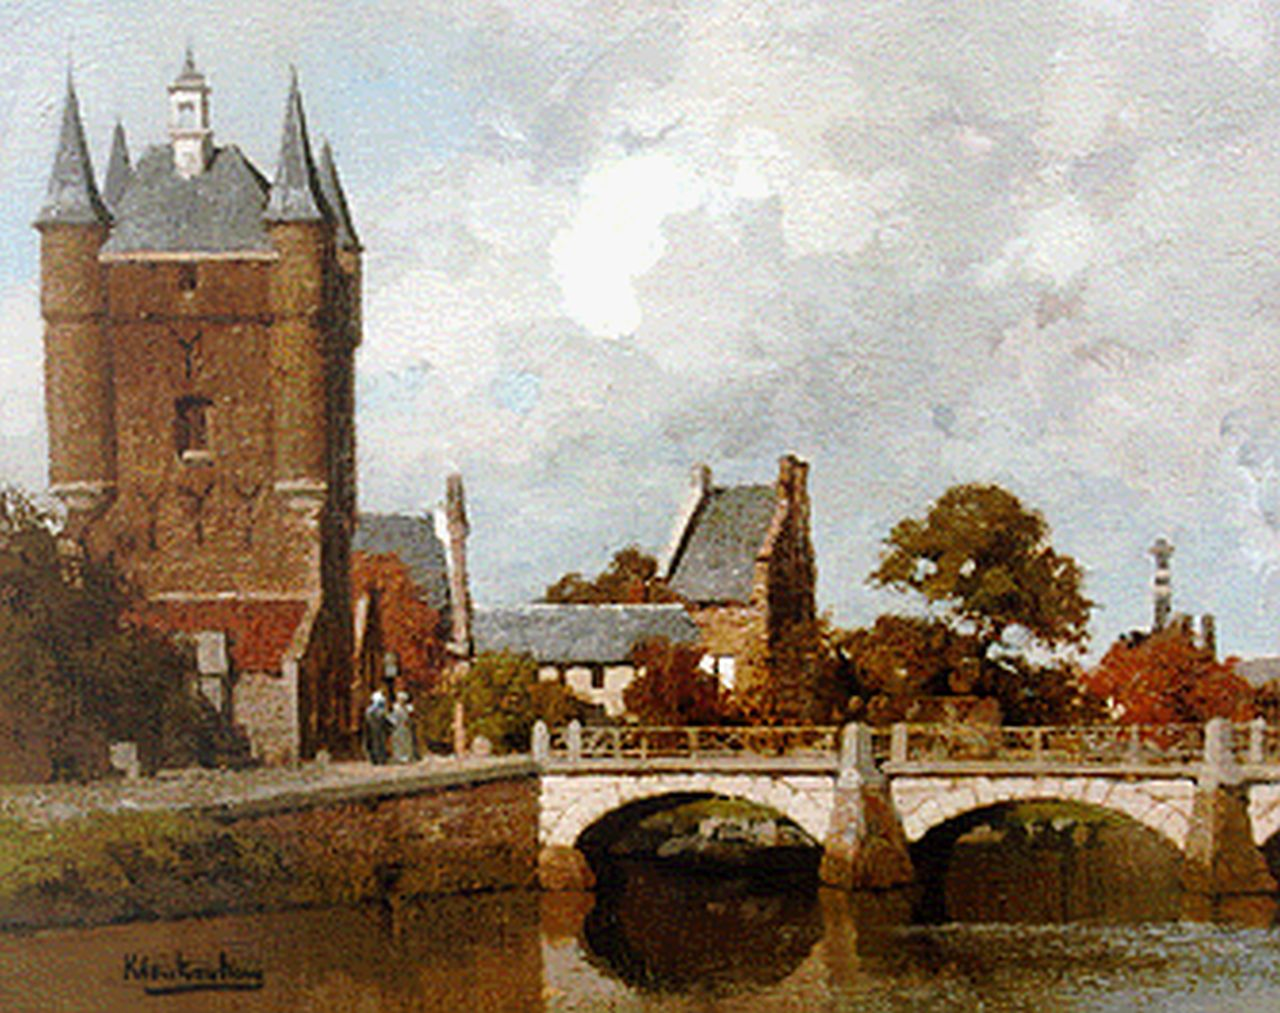 Klinkenberg J.C.K.  | Johannes Christiaan Karel Klinkenberg, View of the Zuydthavenpoort, Zierikzee, oil on panel 20.0 x 27.0 cm, signed l.r.